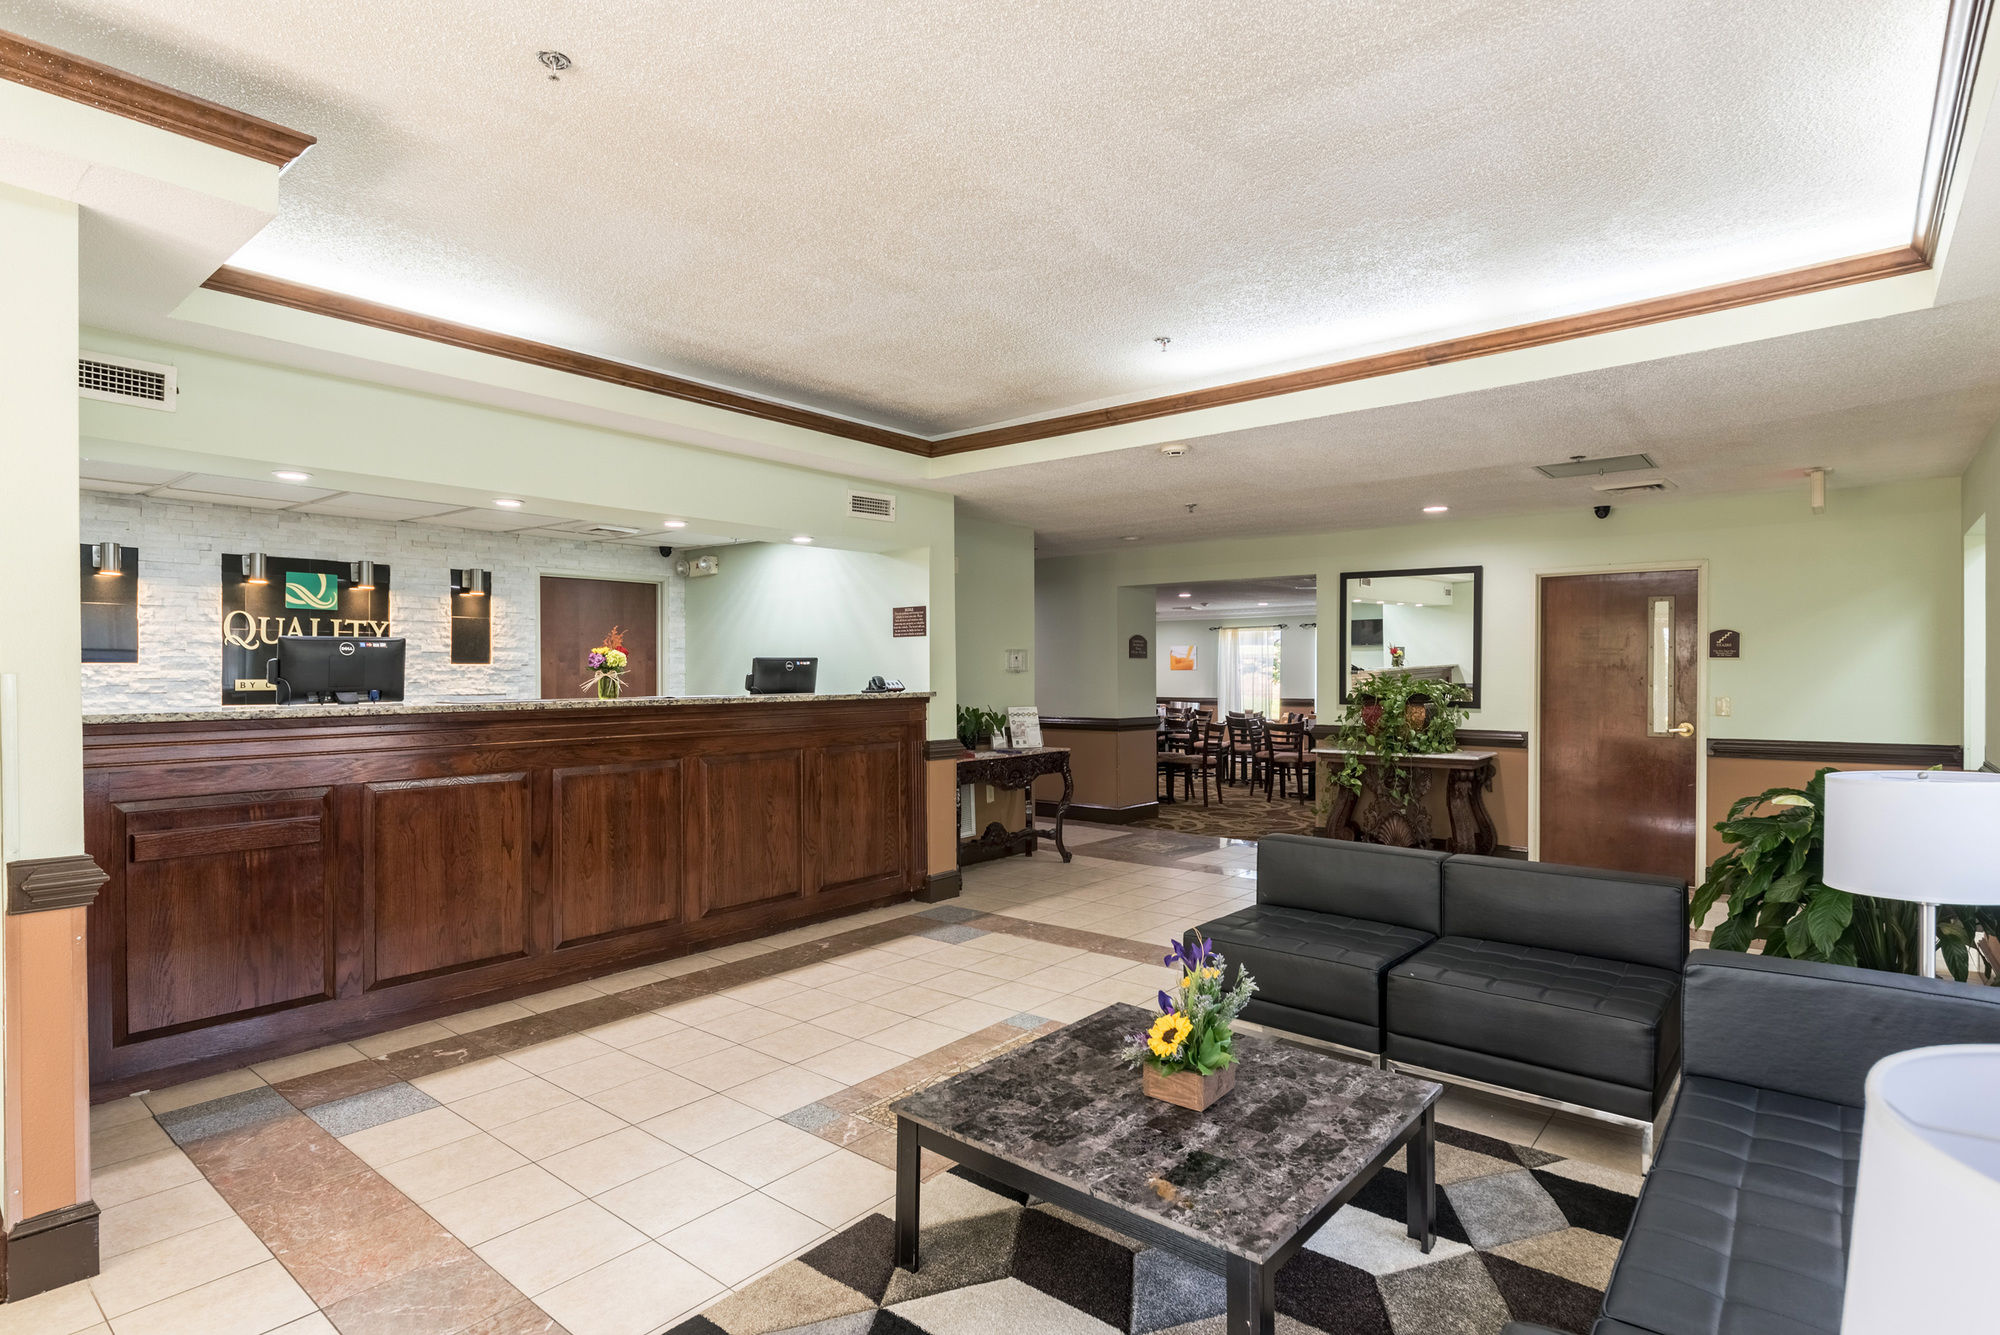 Quality Inn Clemmons in Clemmons, NC